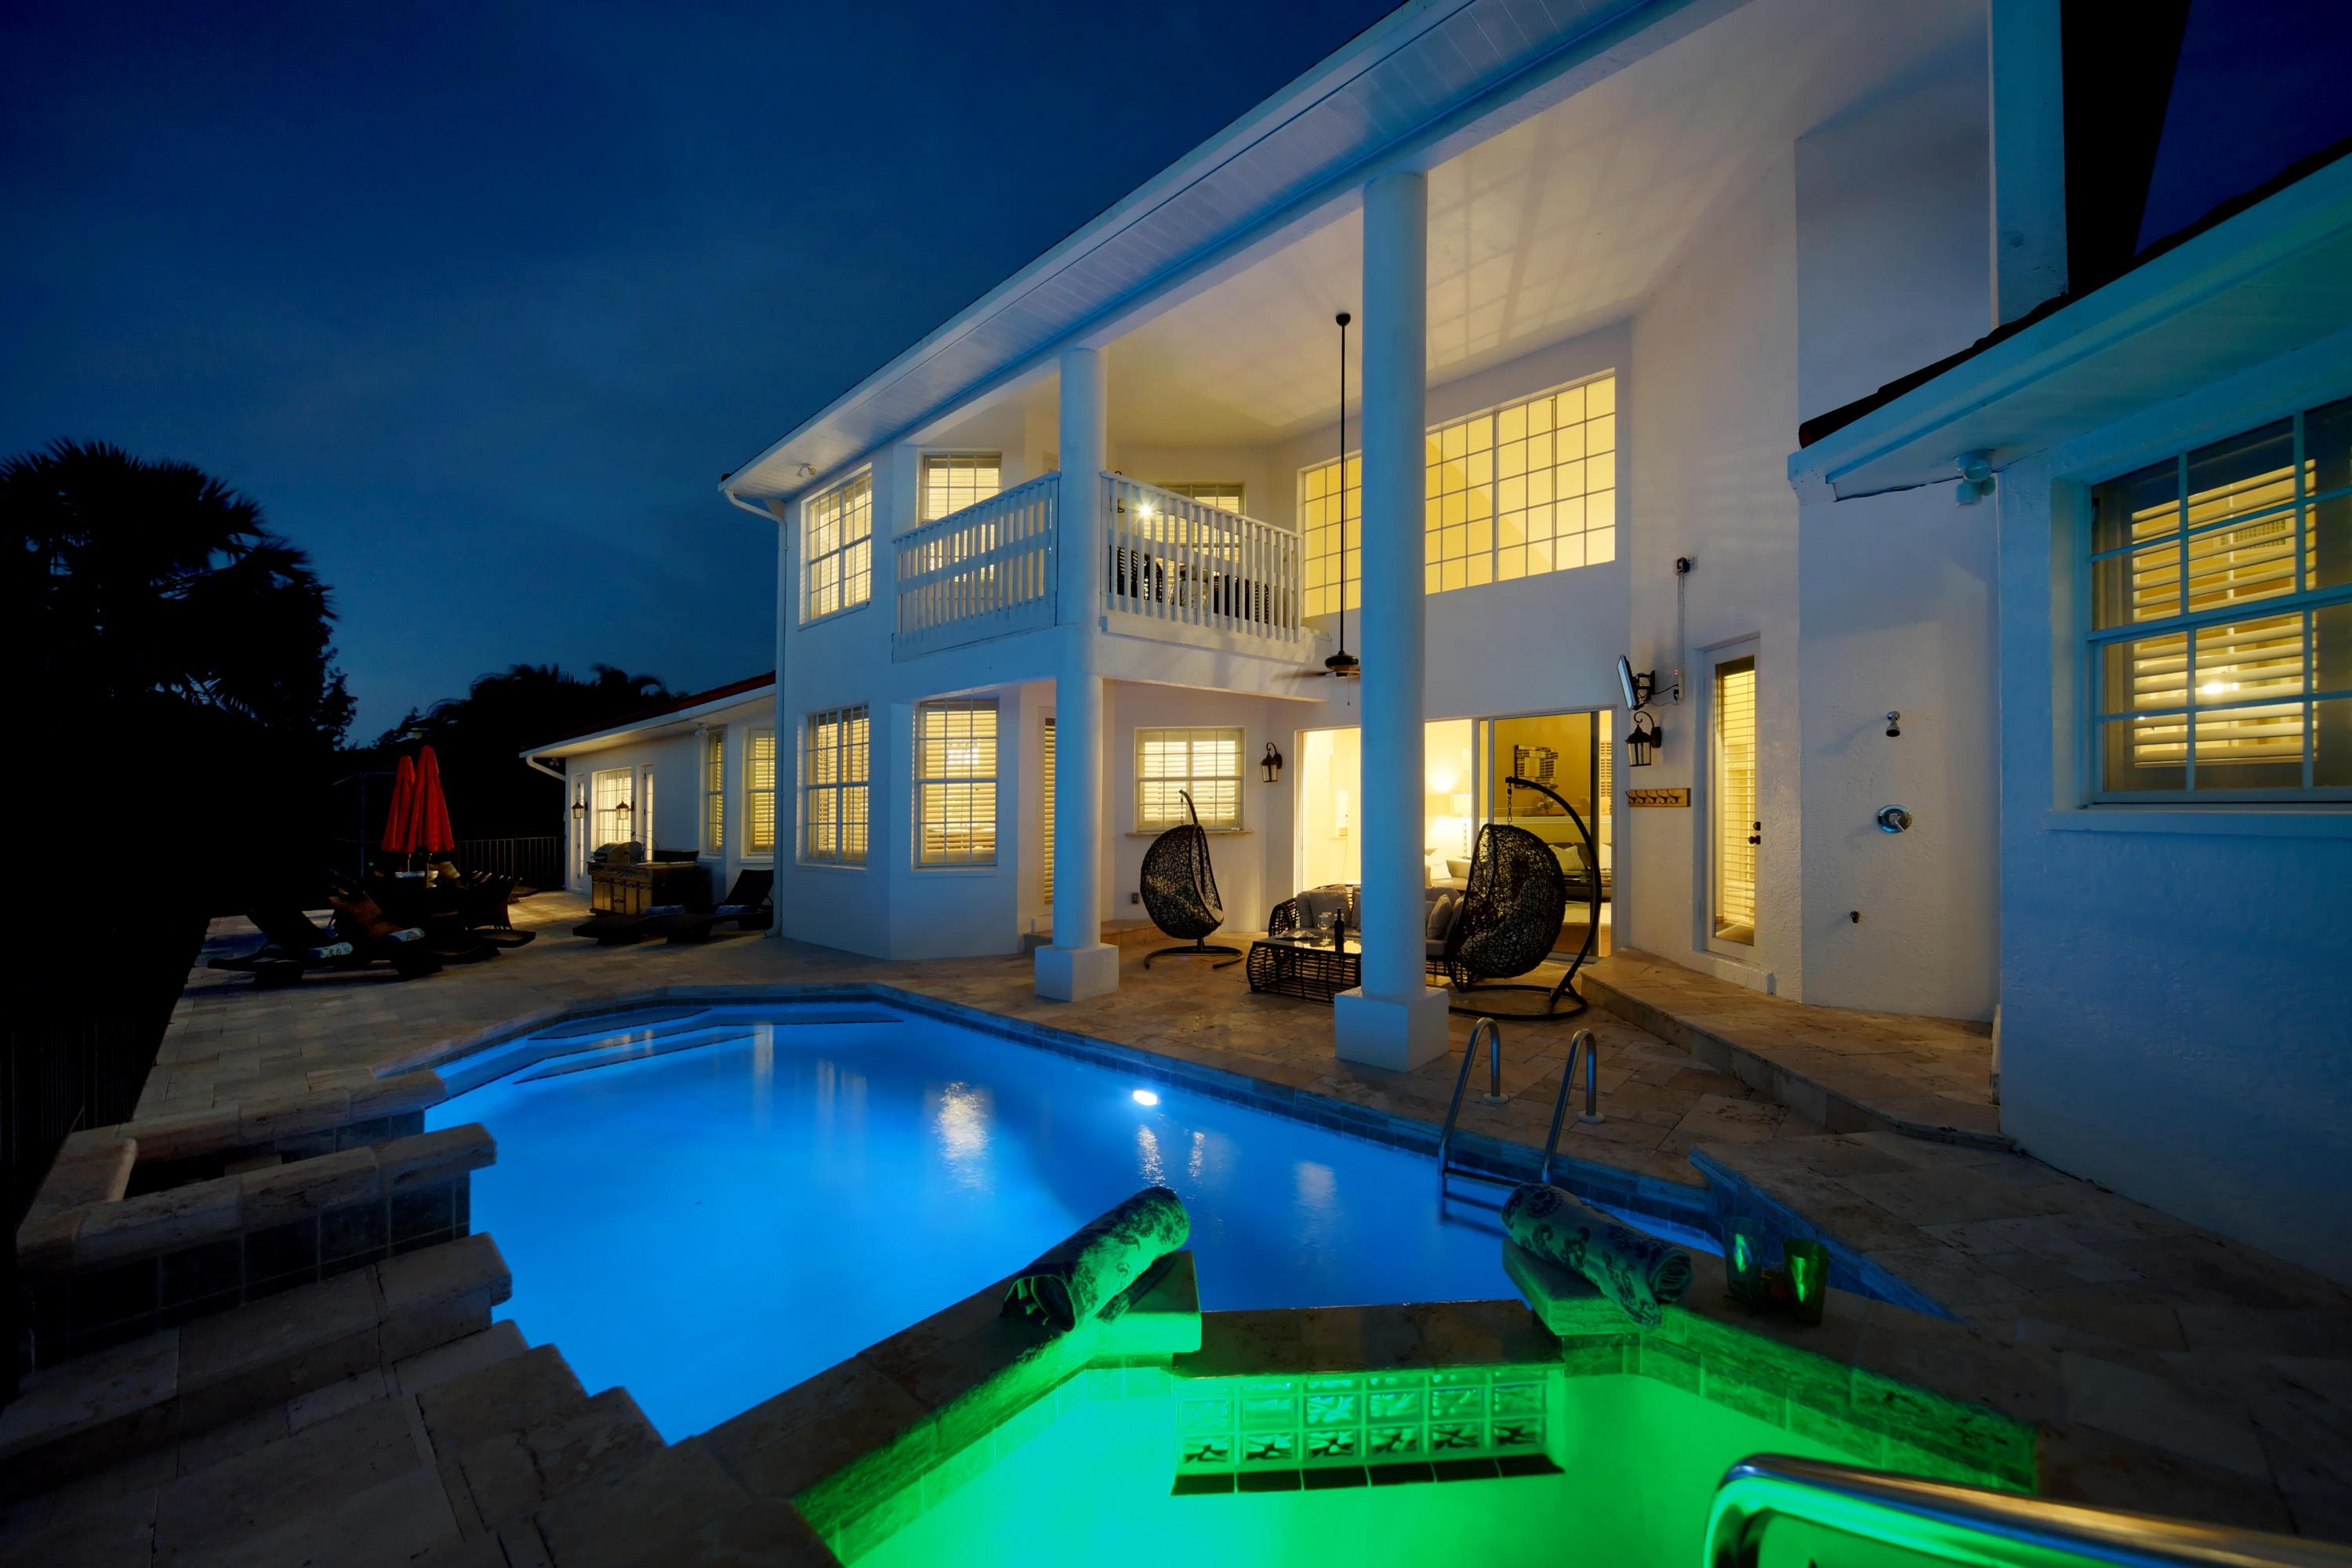 night-pool-in-south.jpg